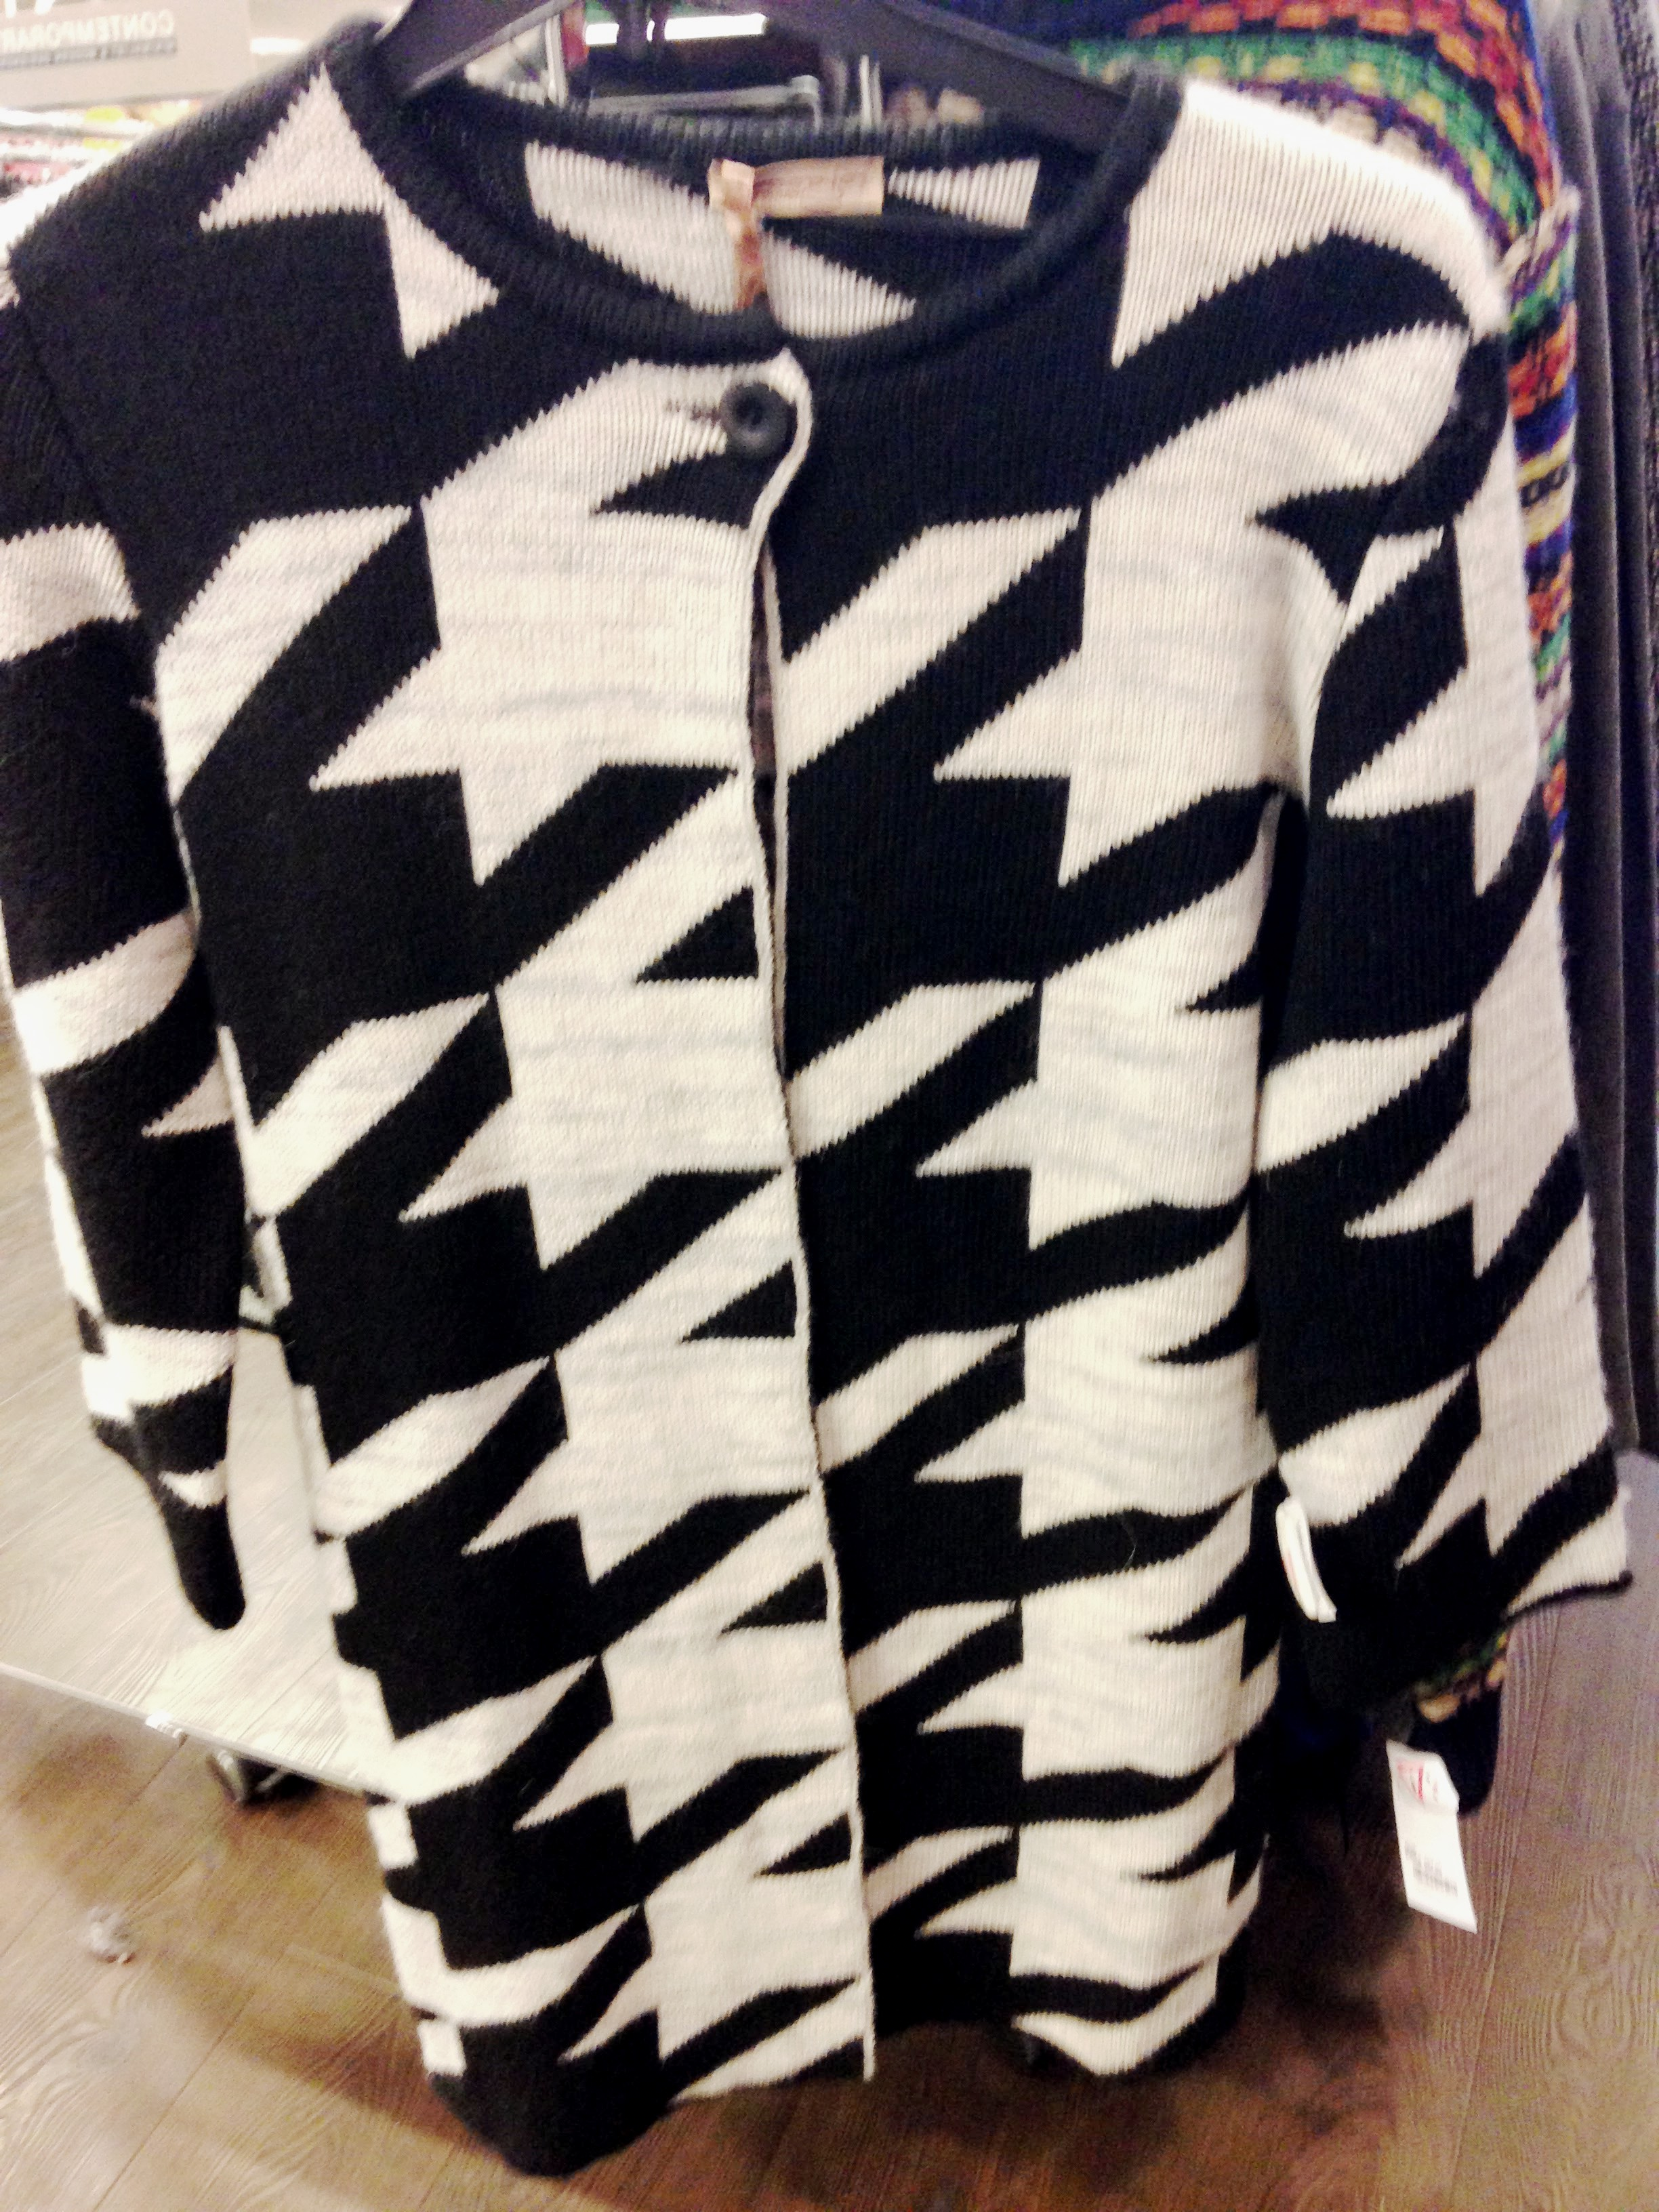 TK Maxx! Monochrome geometric design knitted coat. Made in Italy by Cocogio.Great value at €46.99